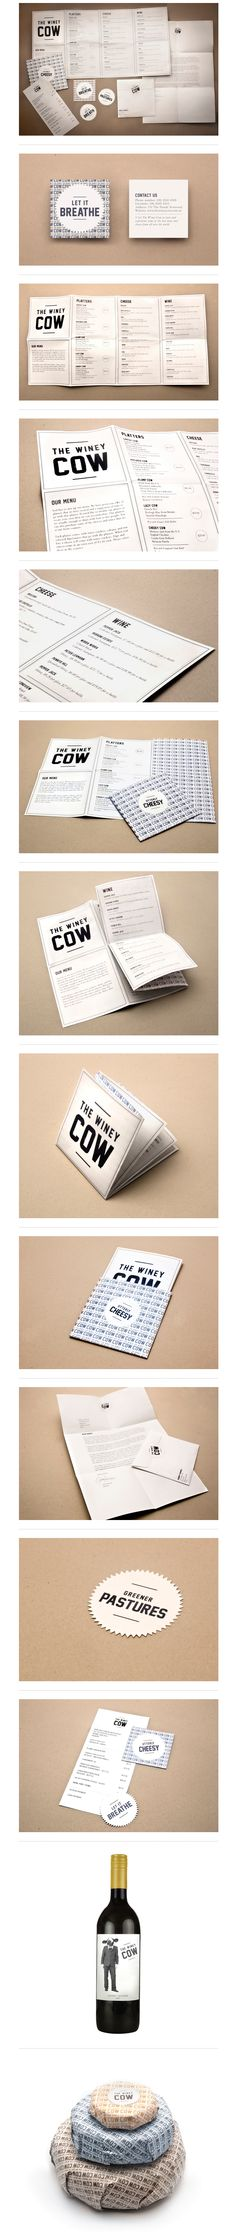 The Winey Cow #packaging #branding #marketing PD